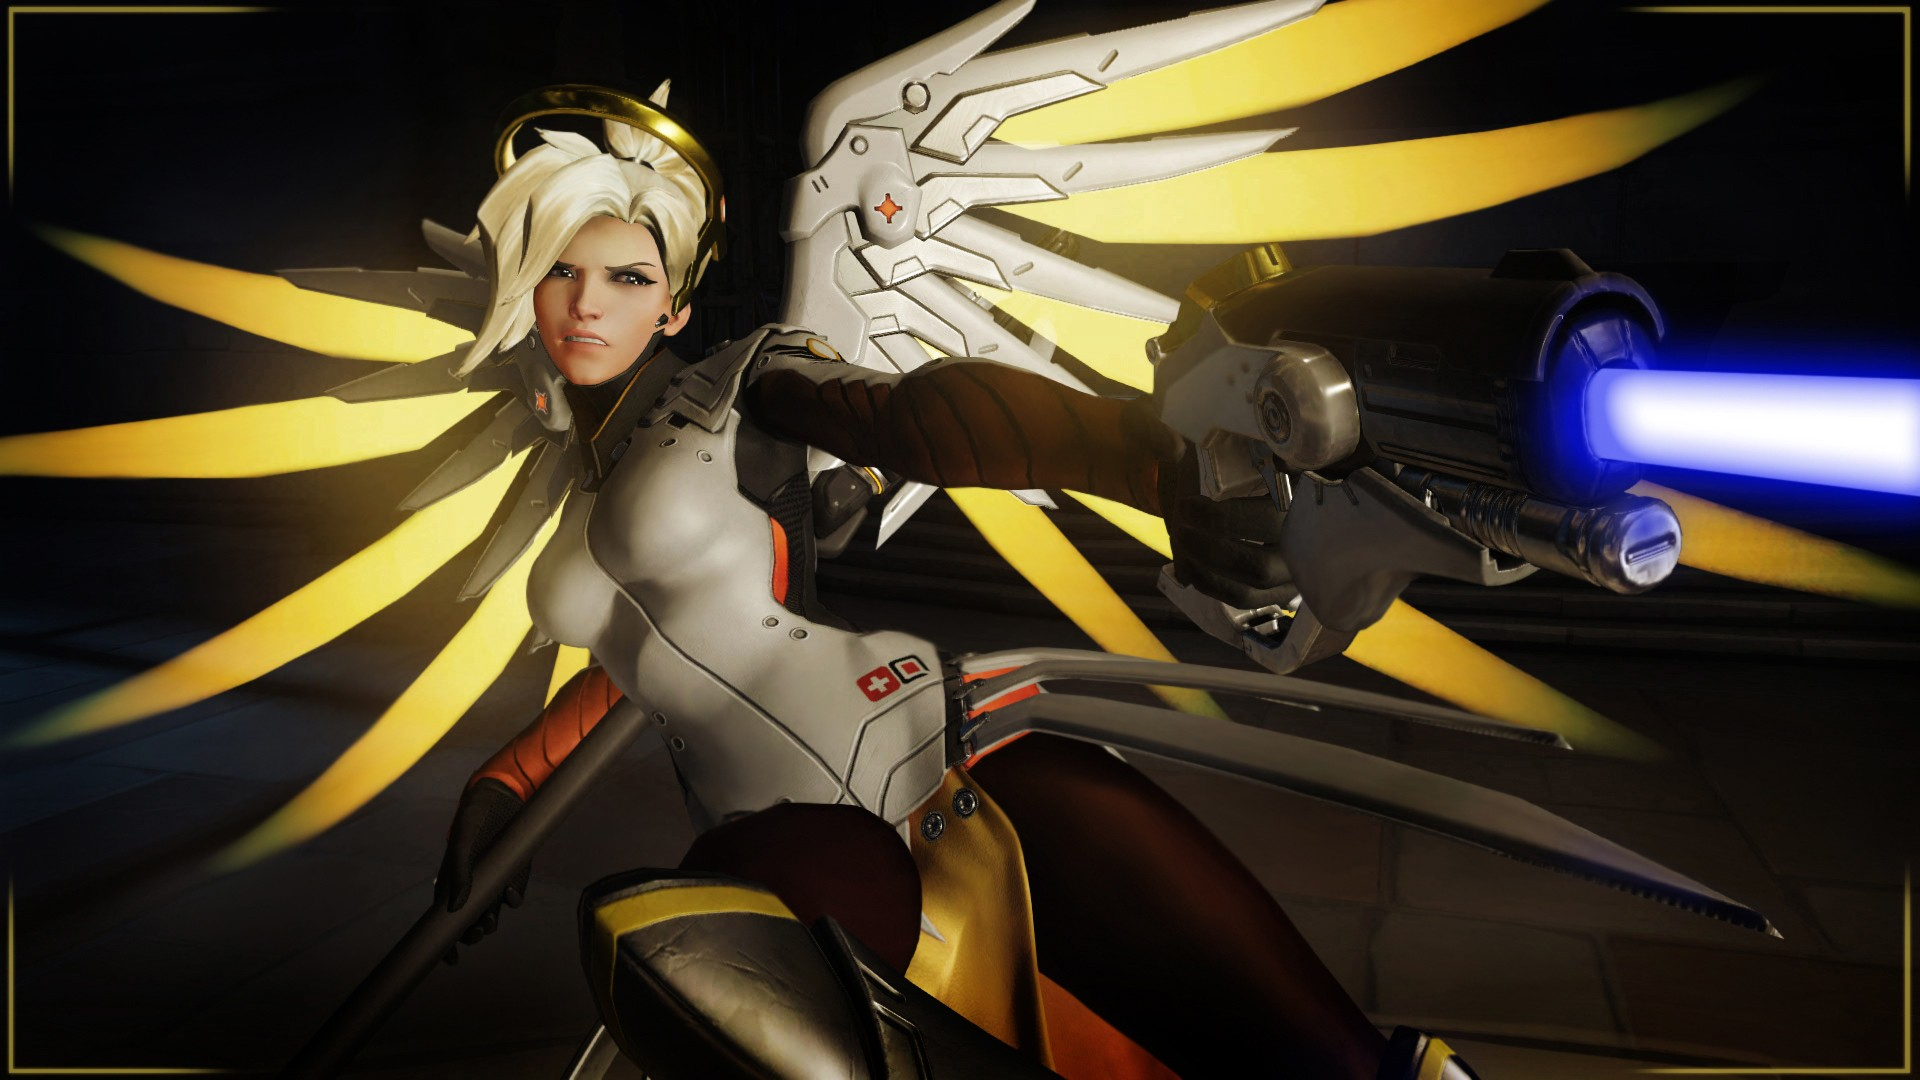 Hd Wallpapers For Mobile Free Download 480x800 Overwatch Mercy Wallpaper 183 ① Download Free Beautiful